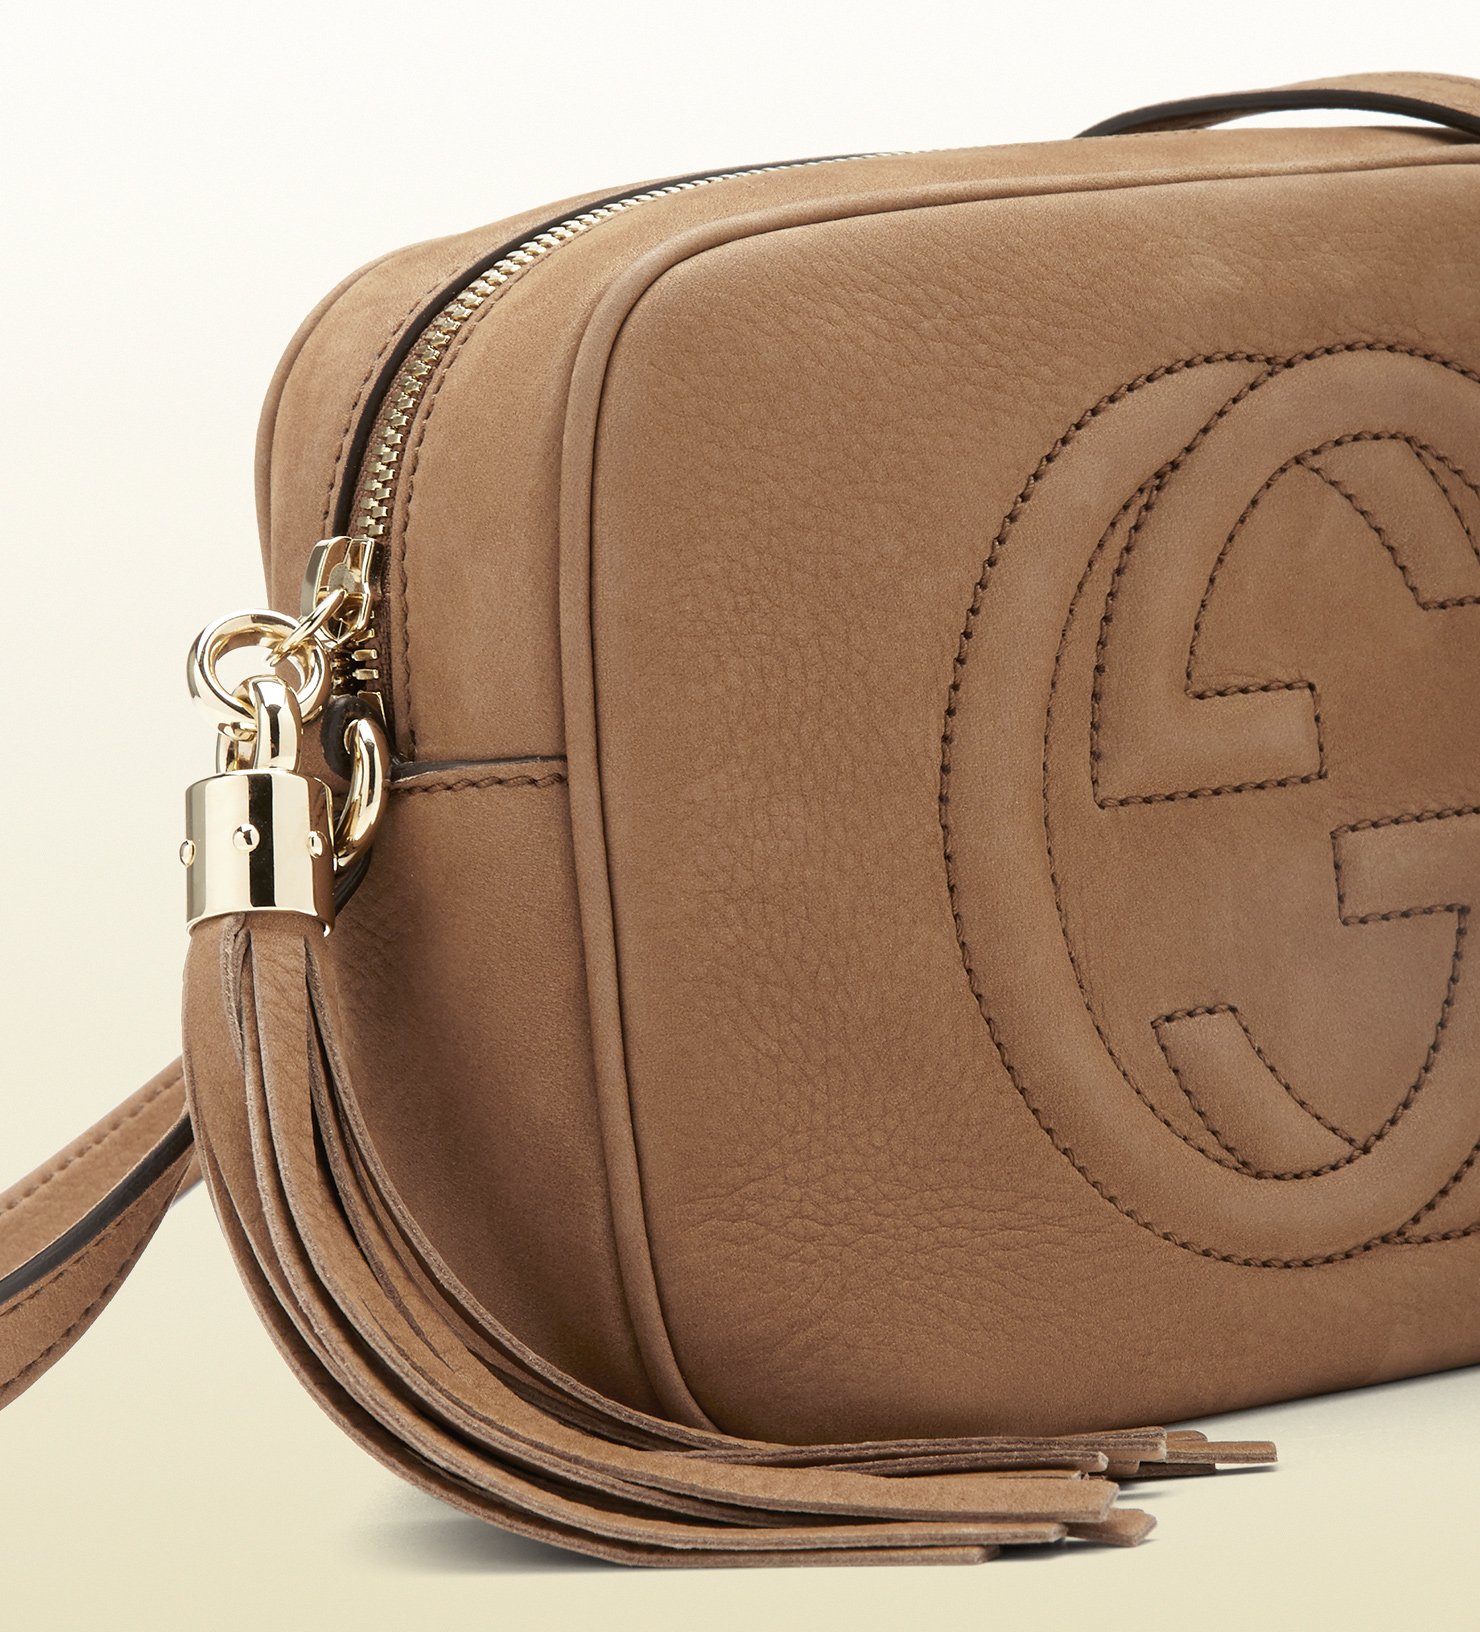 06d935e9730d9 Lyst - Gucci Soho Nubuck Leather Disco Bag in Brown